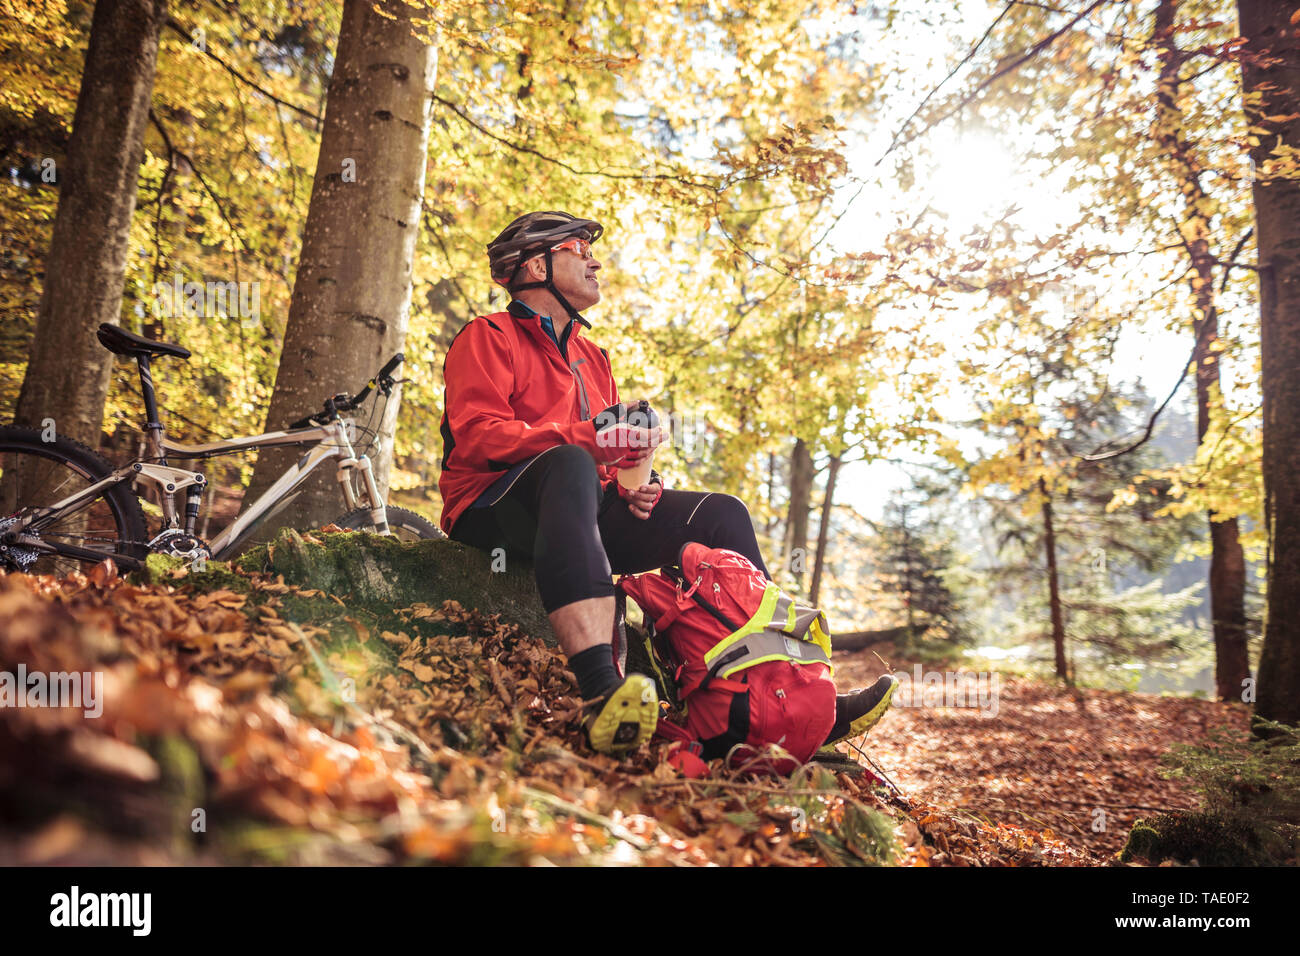 Man with mountainbike having a break in forest - Stock Image